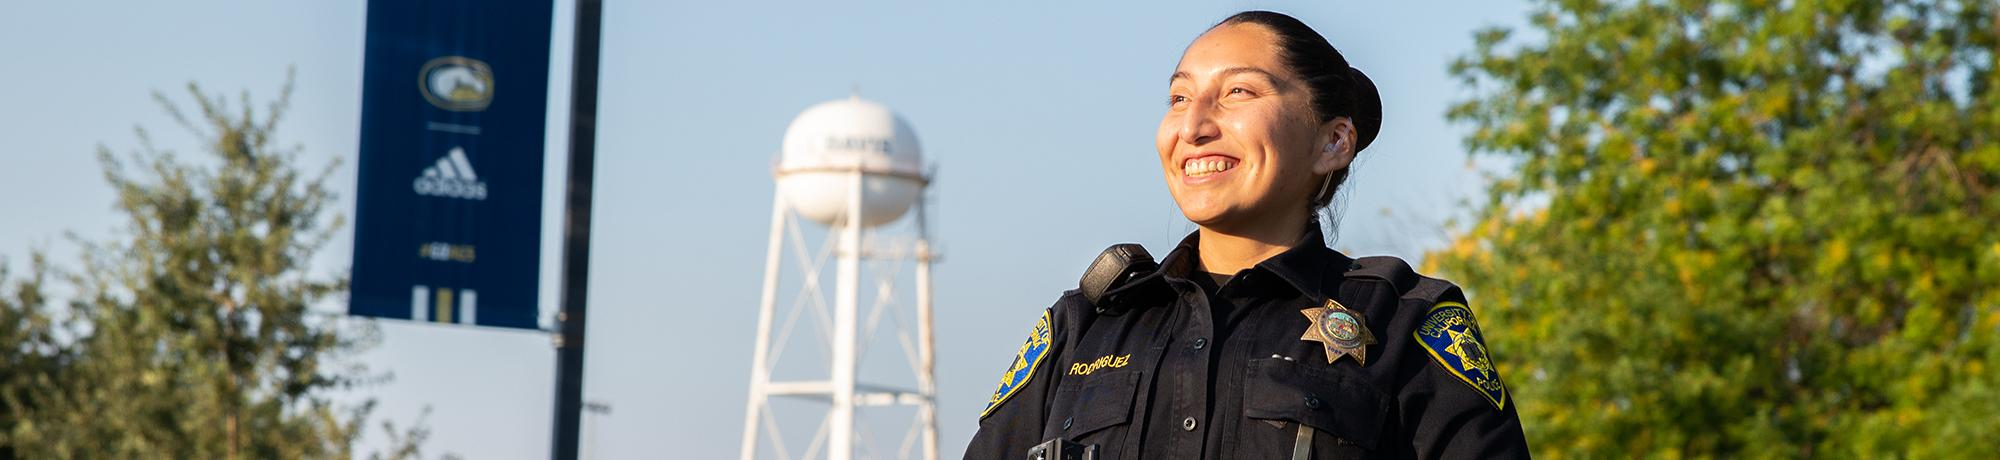 Officer smiles with UC Davis water tower in the background